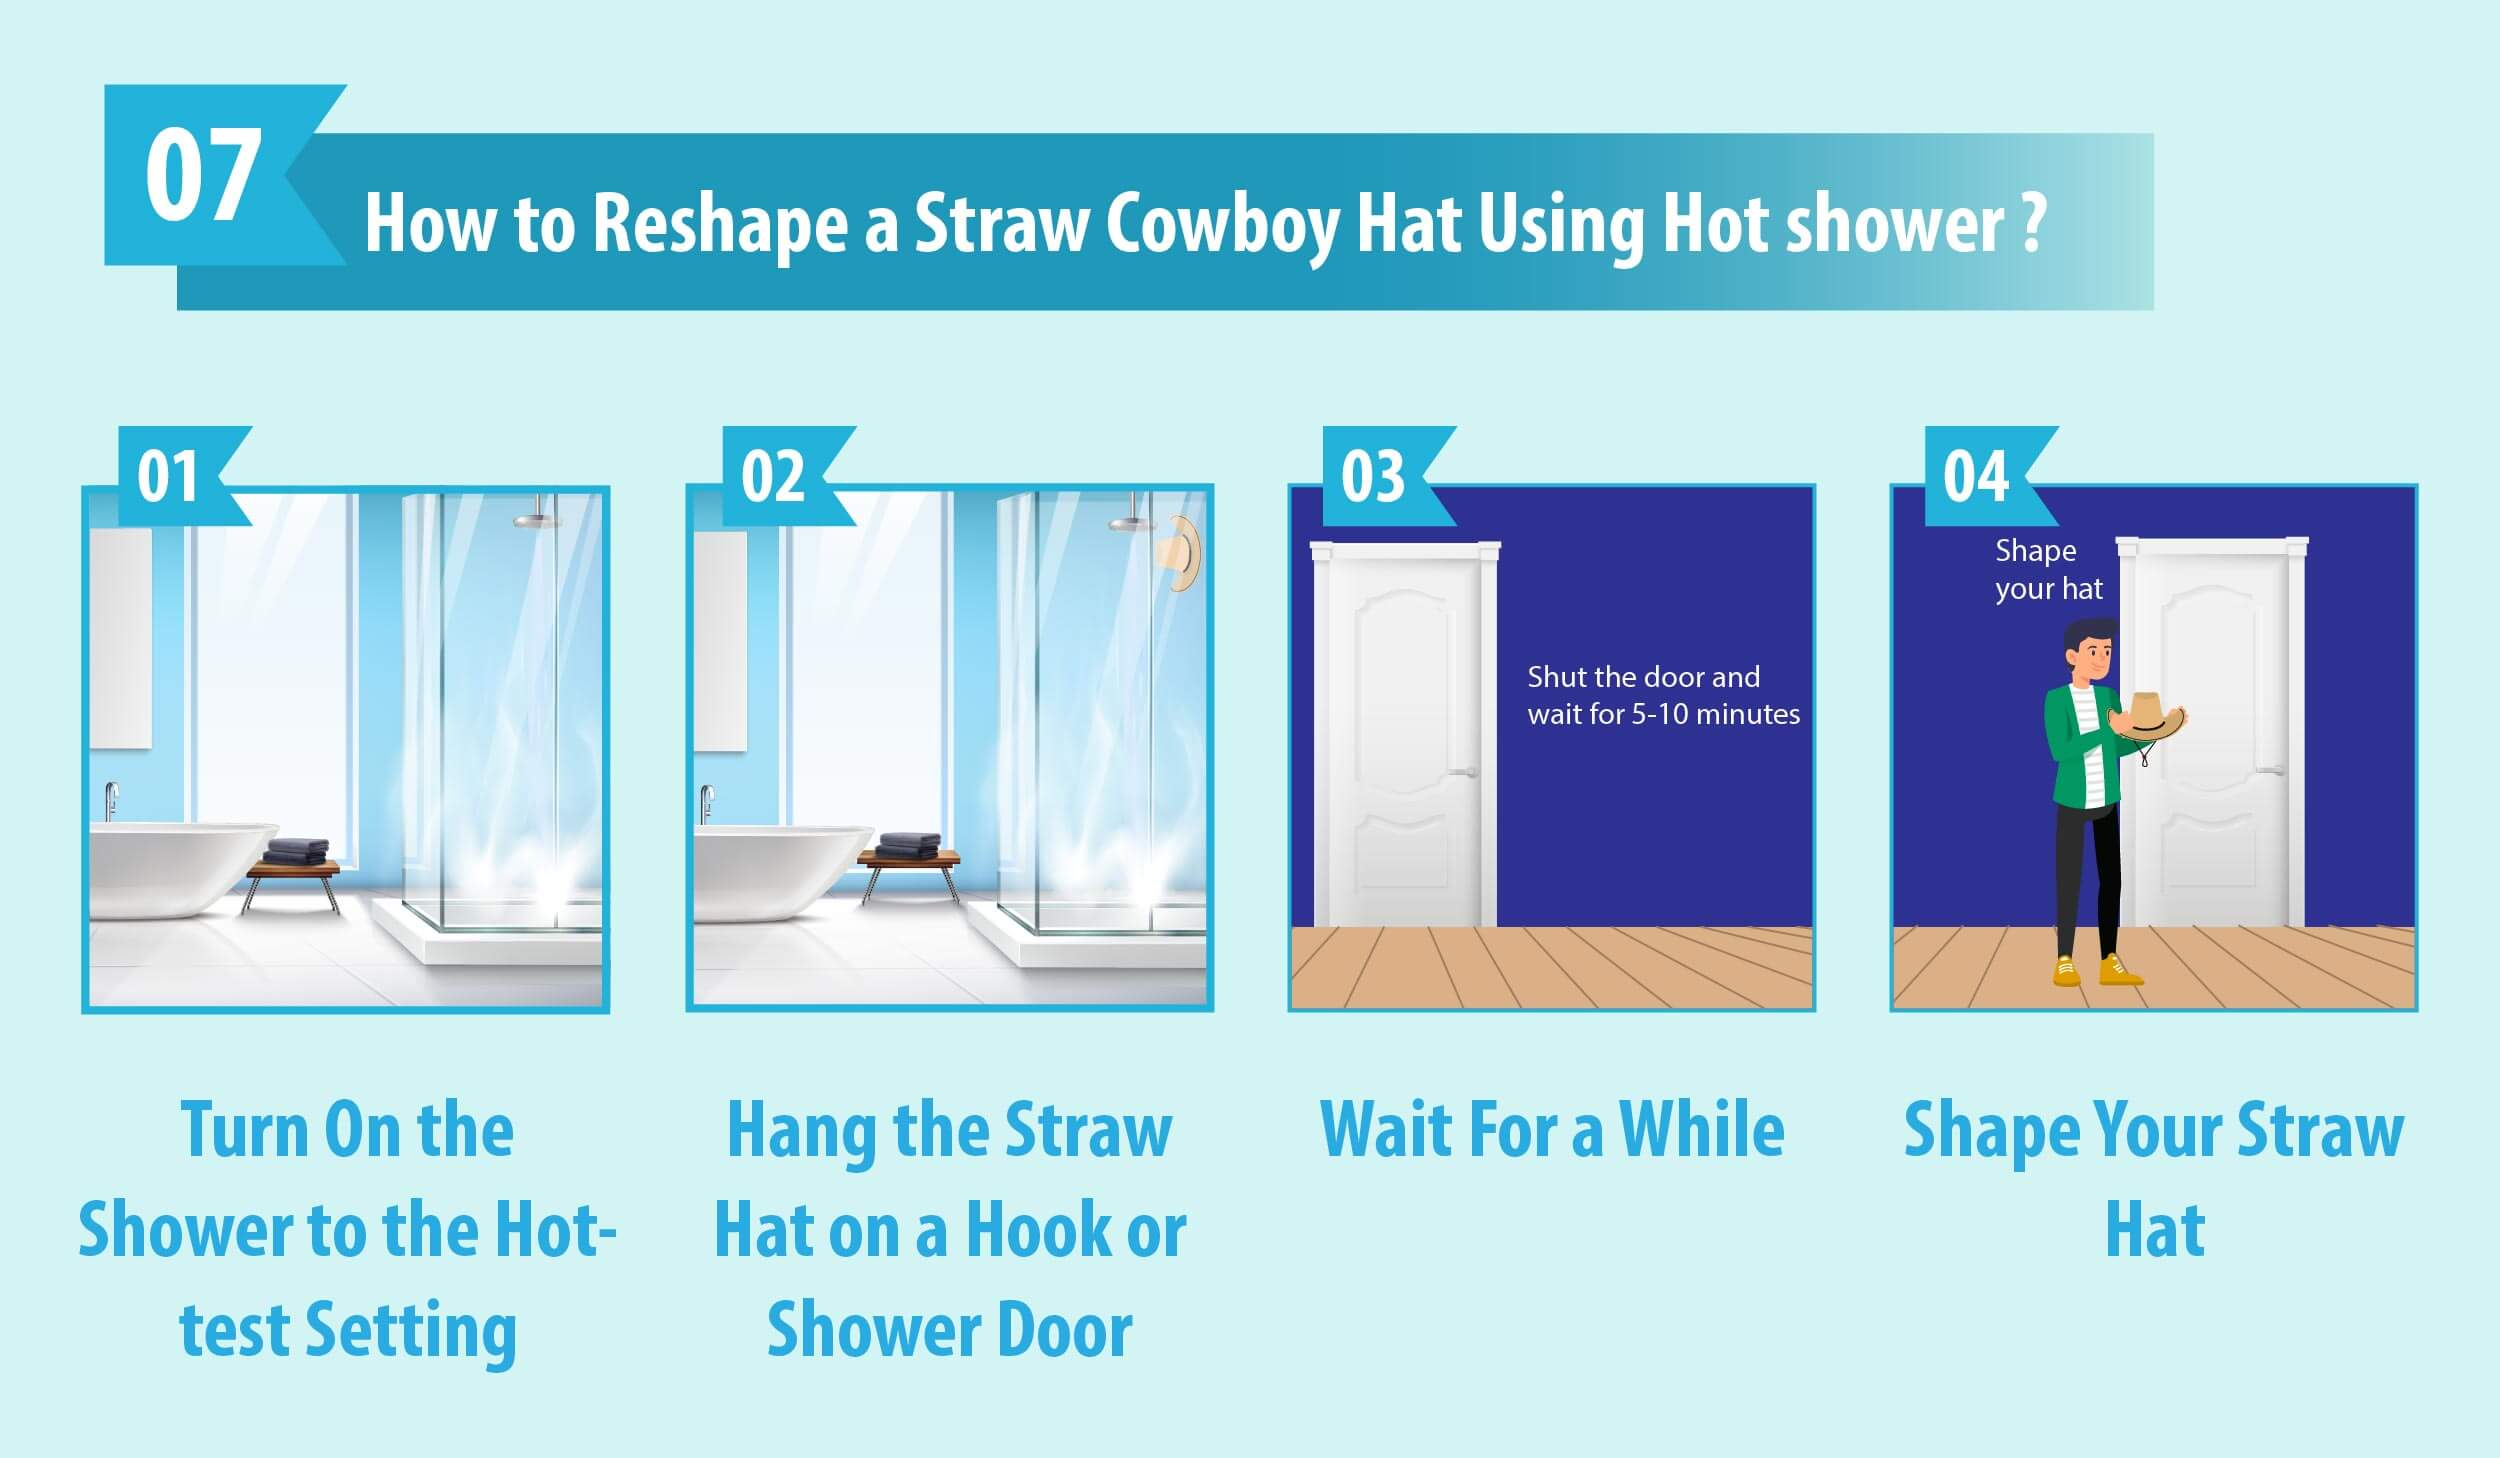 Reshape Your Straw Cowboy Hat in Hot Shower